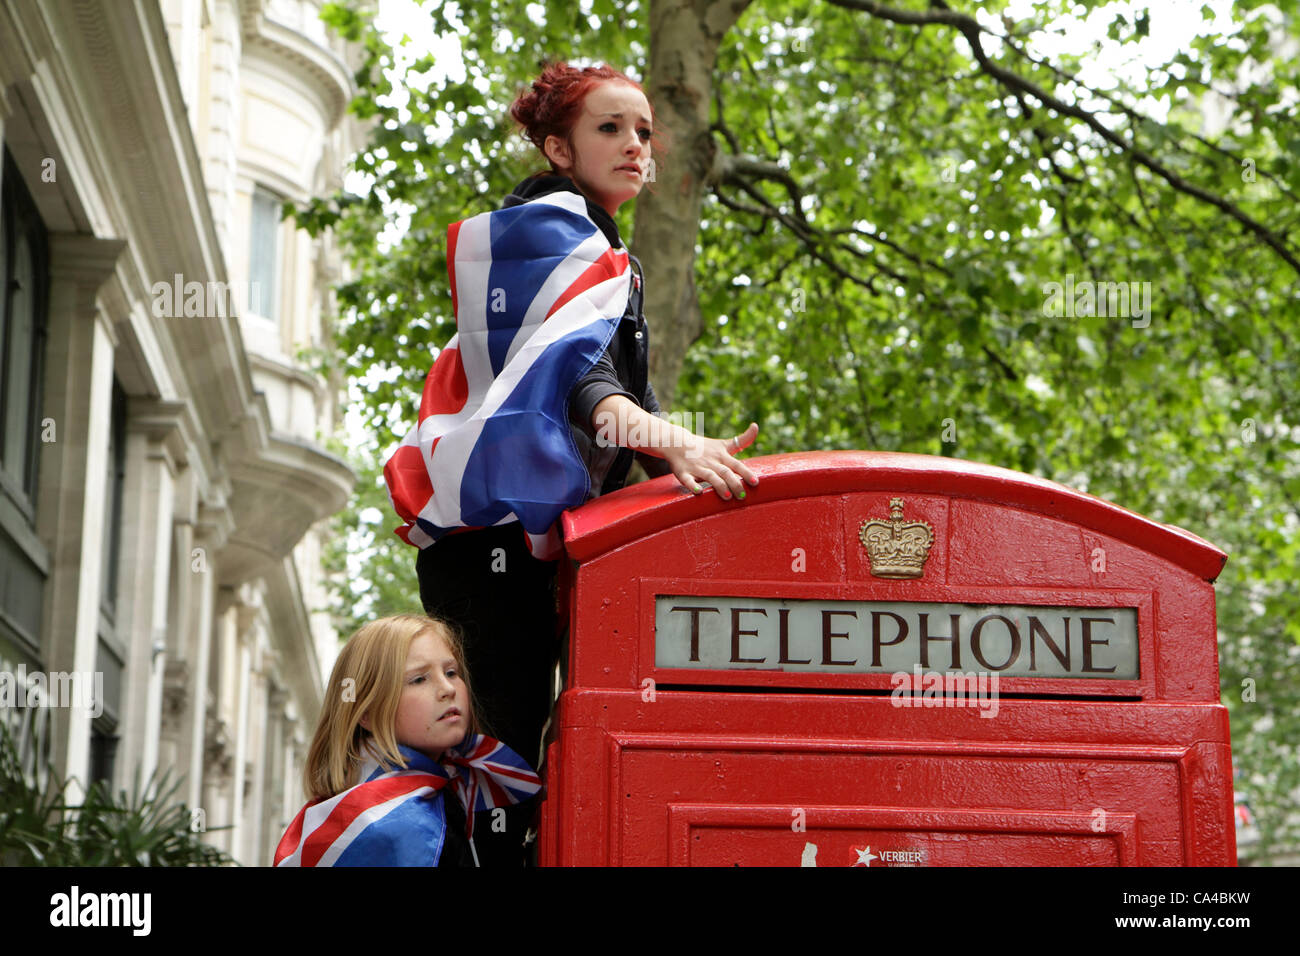 Two girls climb onto a telephone box to watch the Queen's Diamond Jubilee carriage procession, London - Stock Image